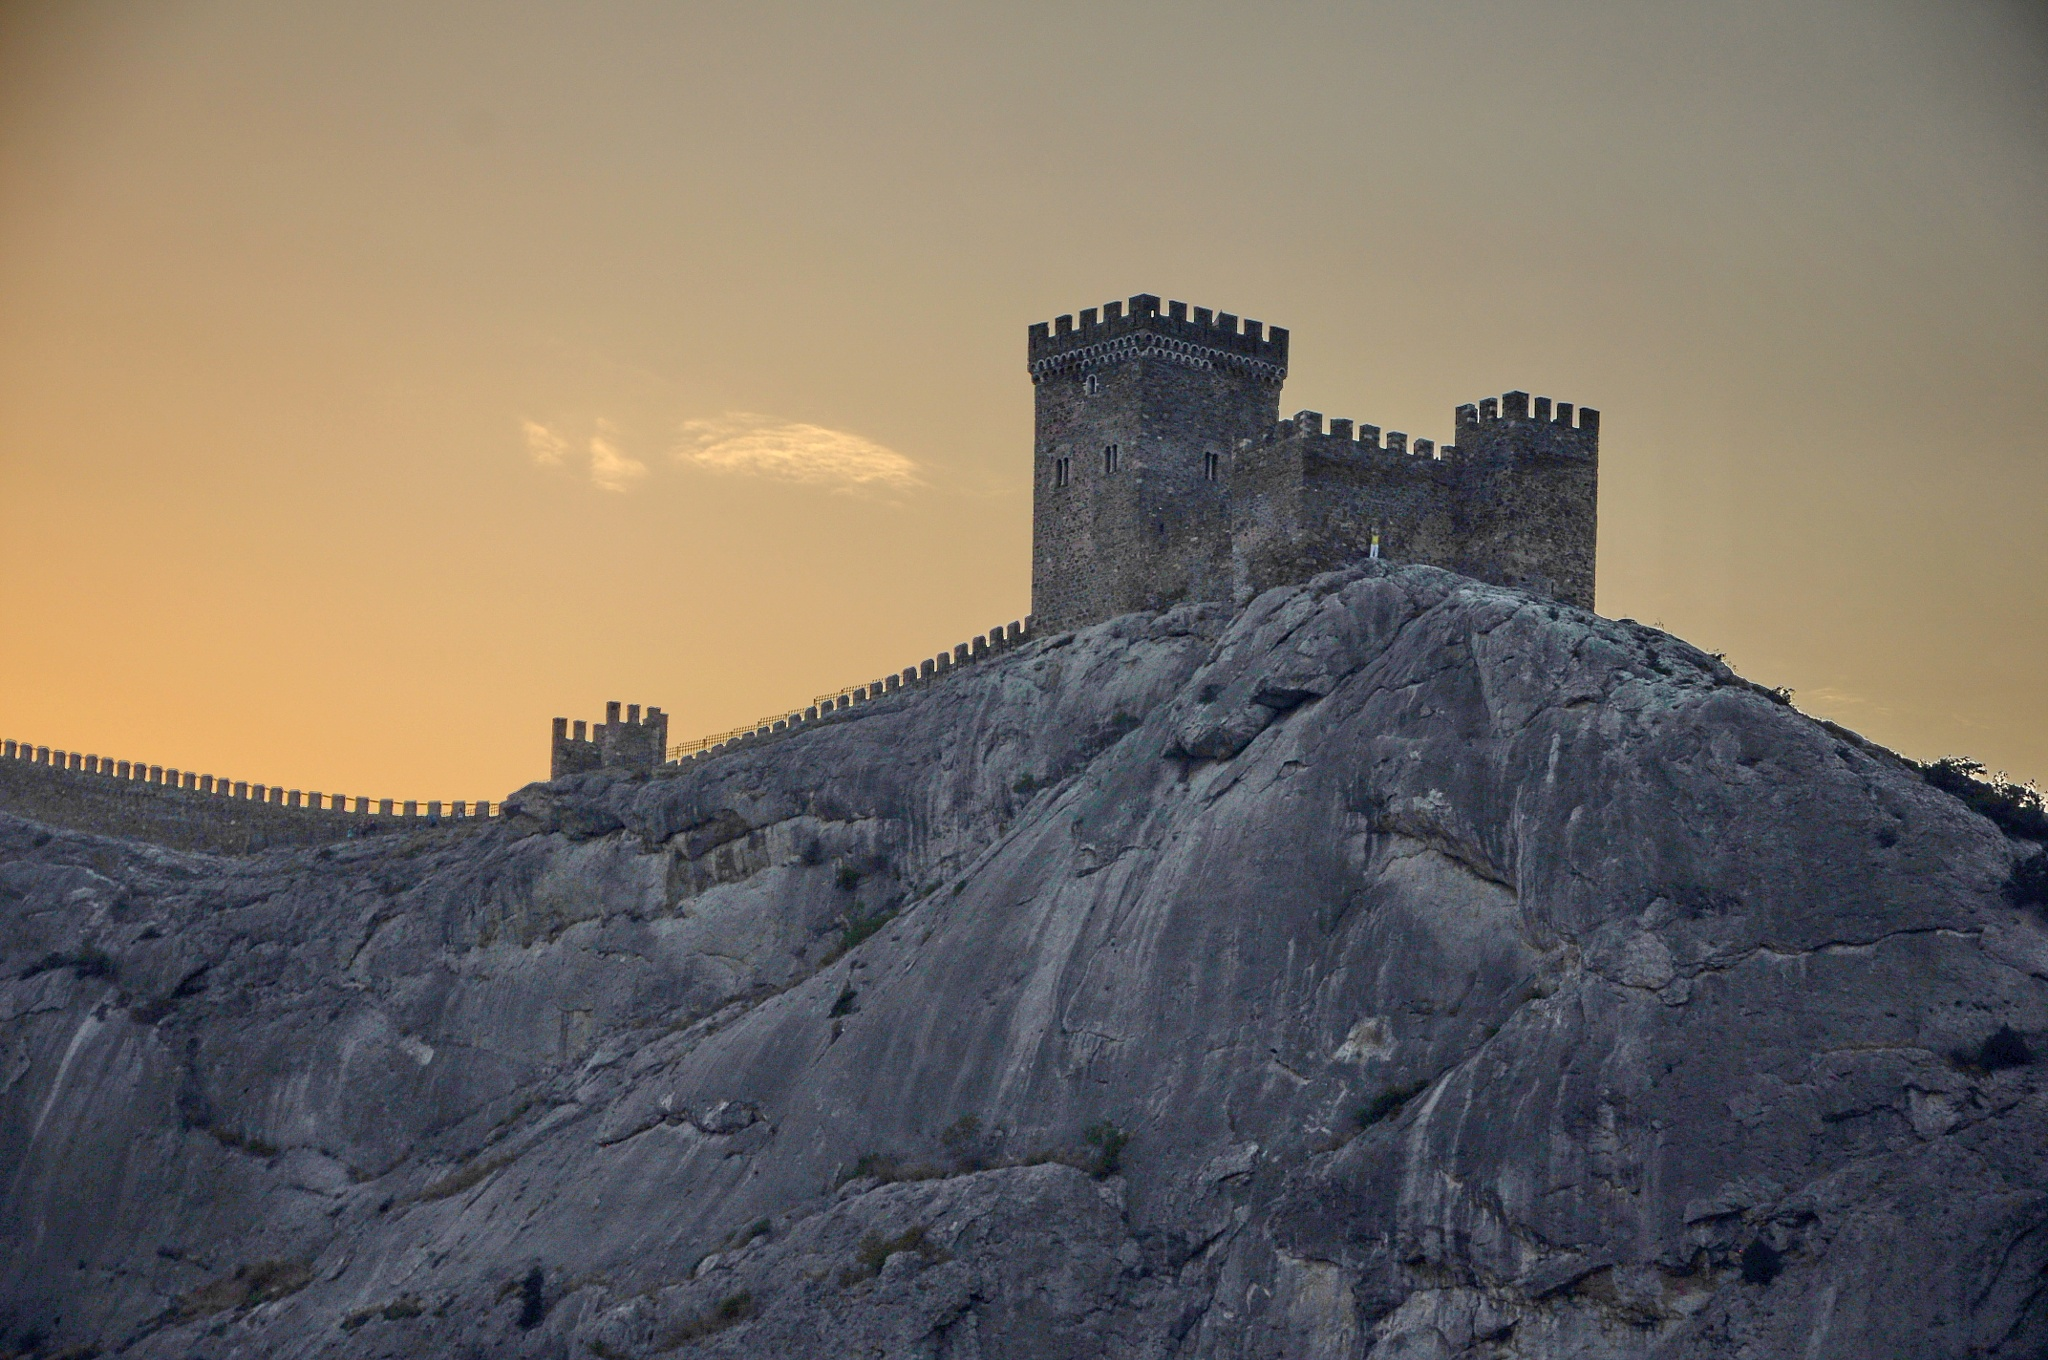 Genoese fortress, Sudak, Crimea by vadsever58